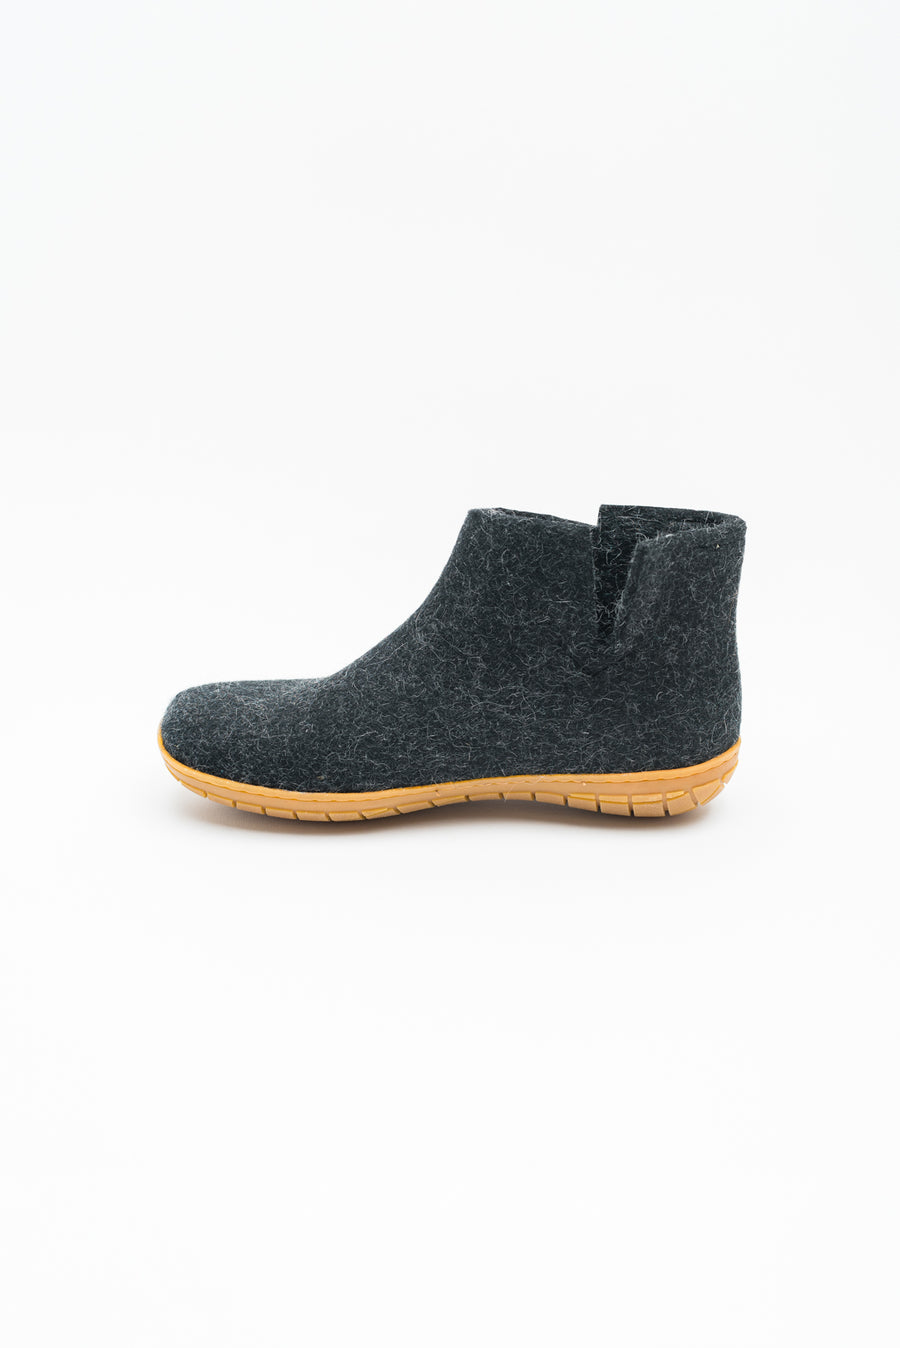 Men's Low Boot with Rubber Sole - Charcoal